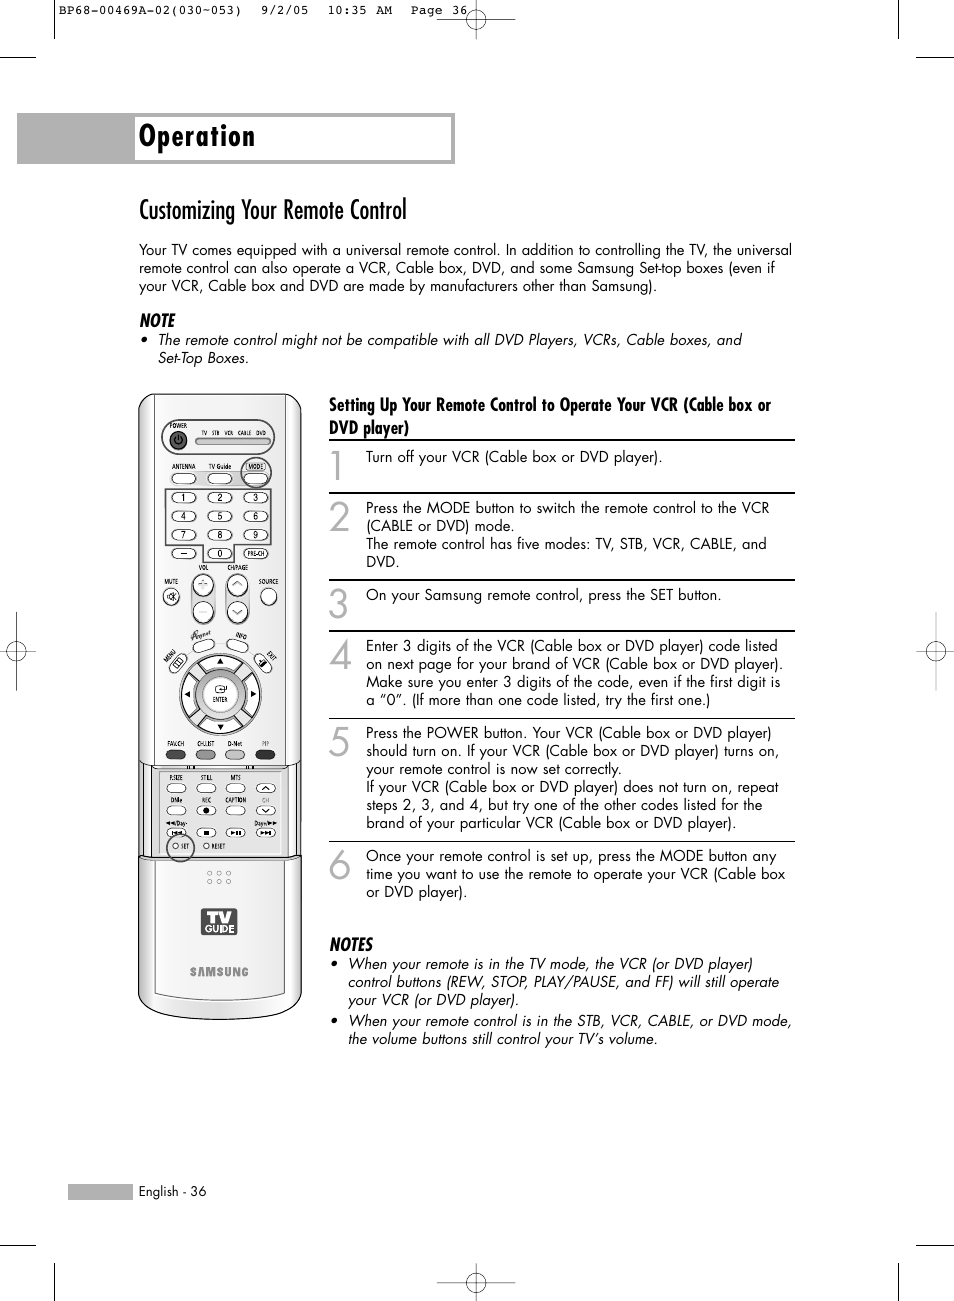 Customizing your remote control, Operation | Samsung